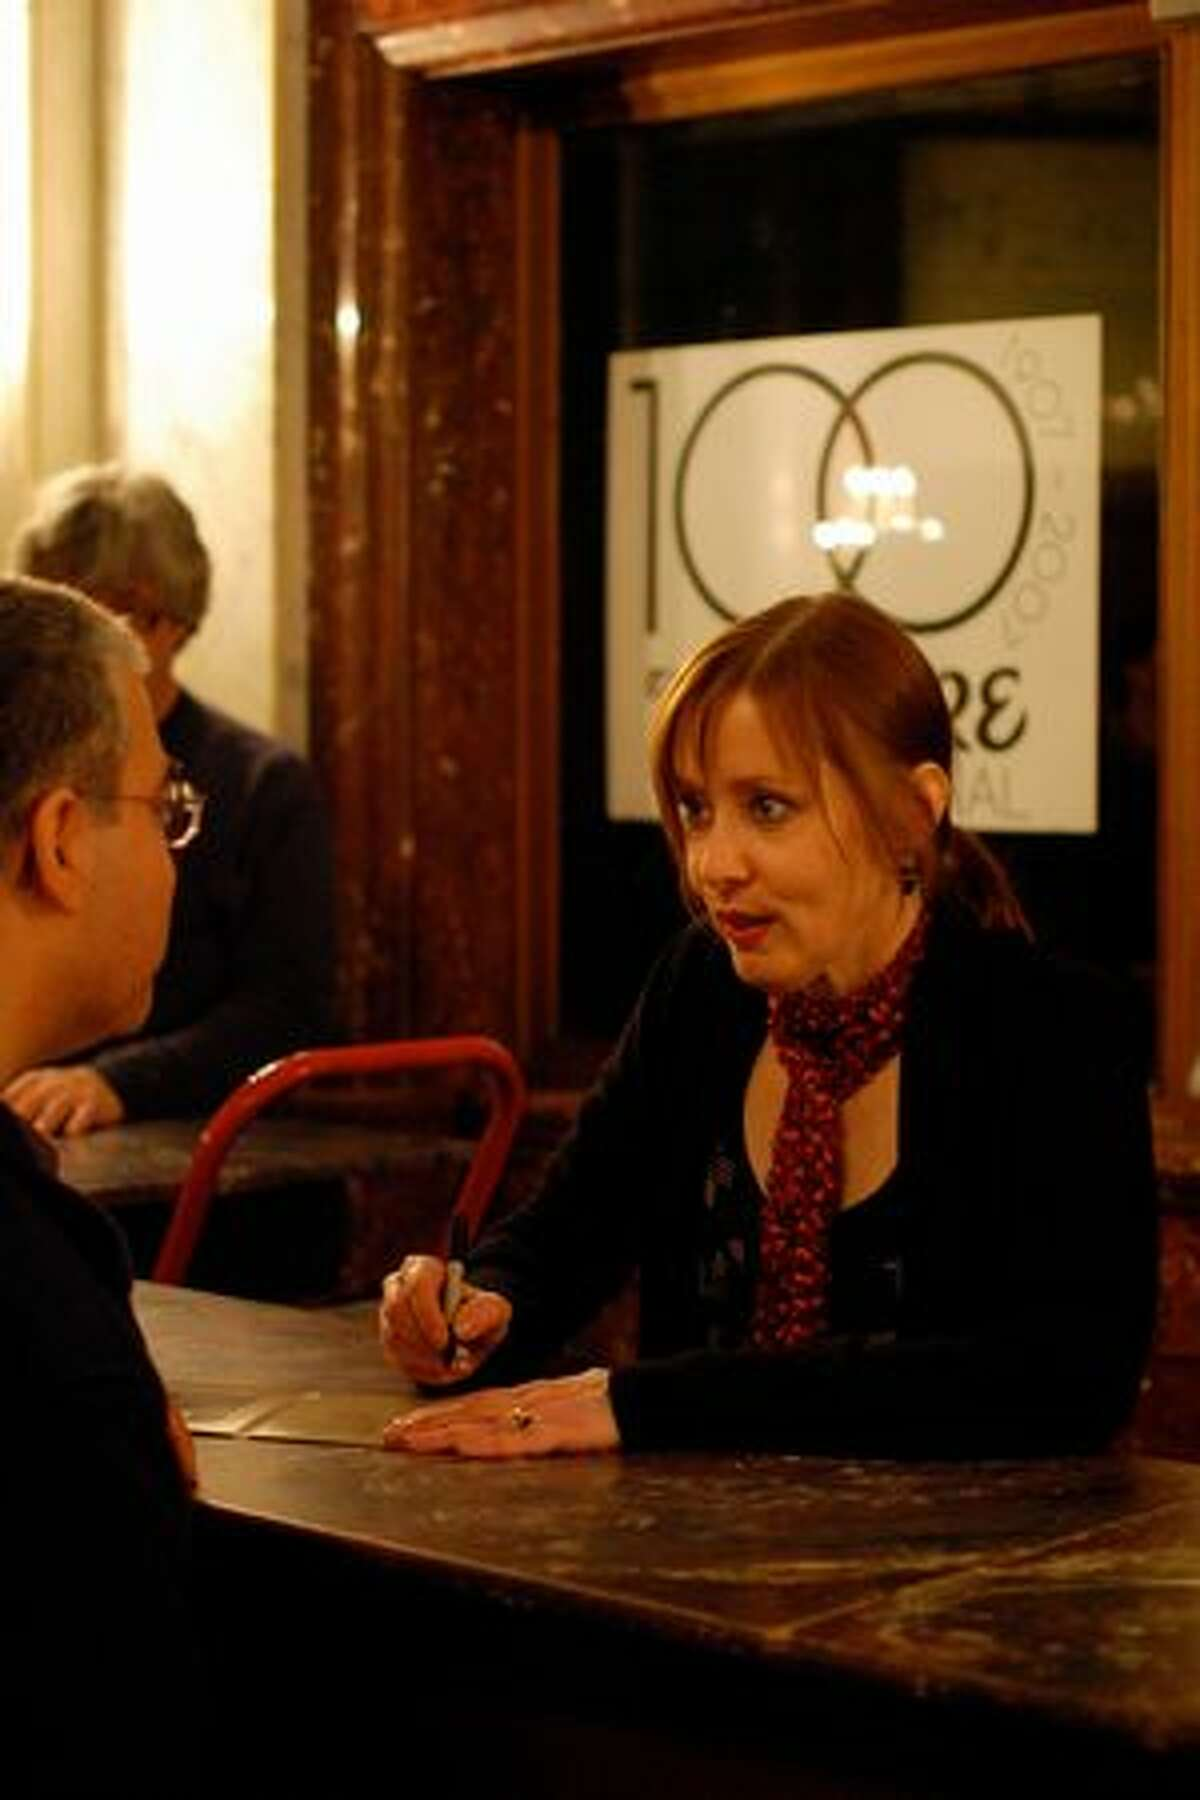 Suzanne Vega signing autographs after her performance at the Moore Theatre on Feb. 25. (Kam Martin / seattlepi.com)